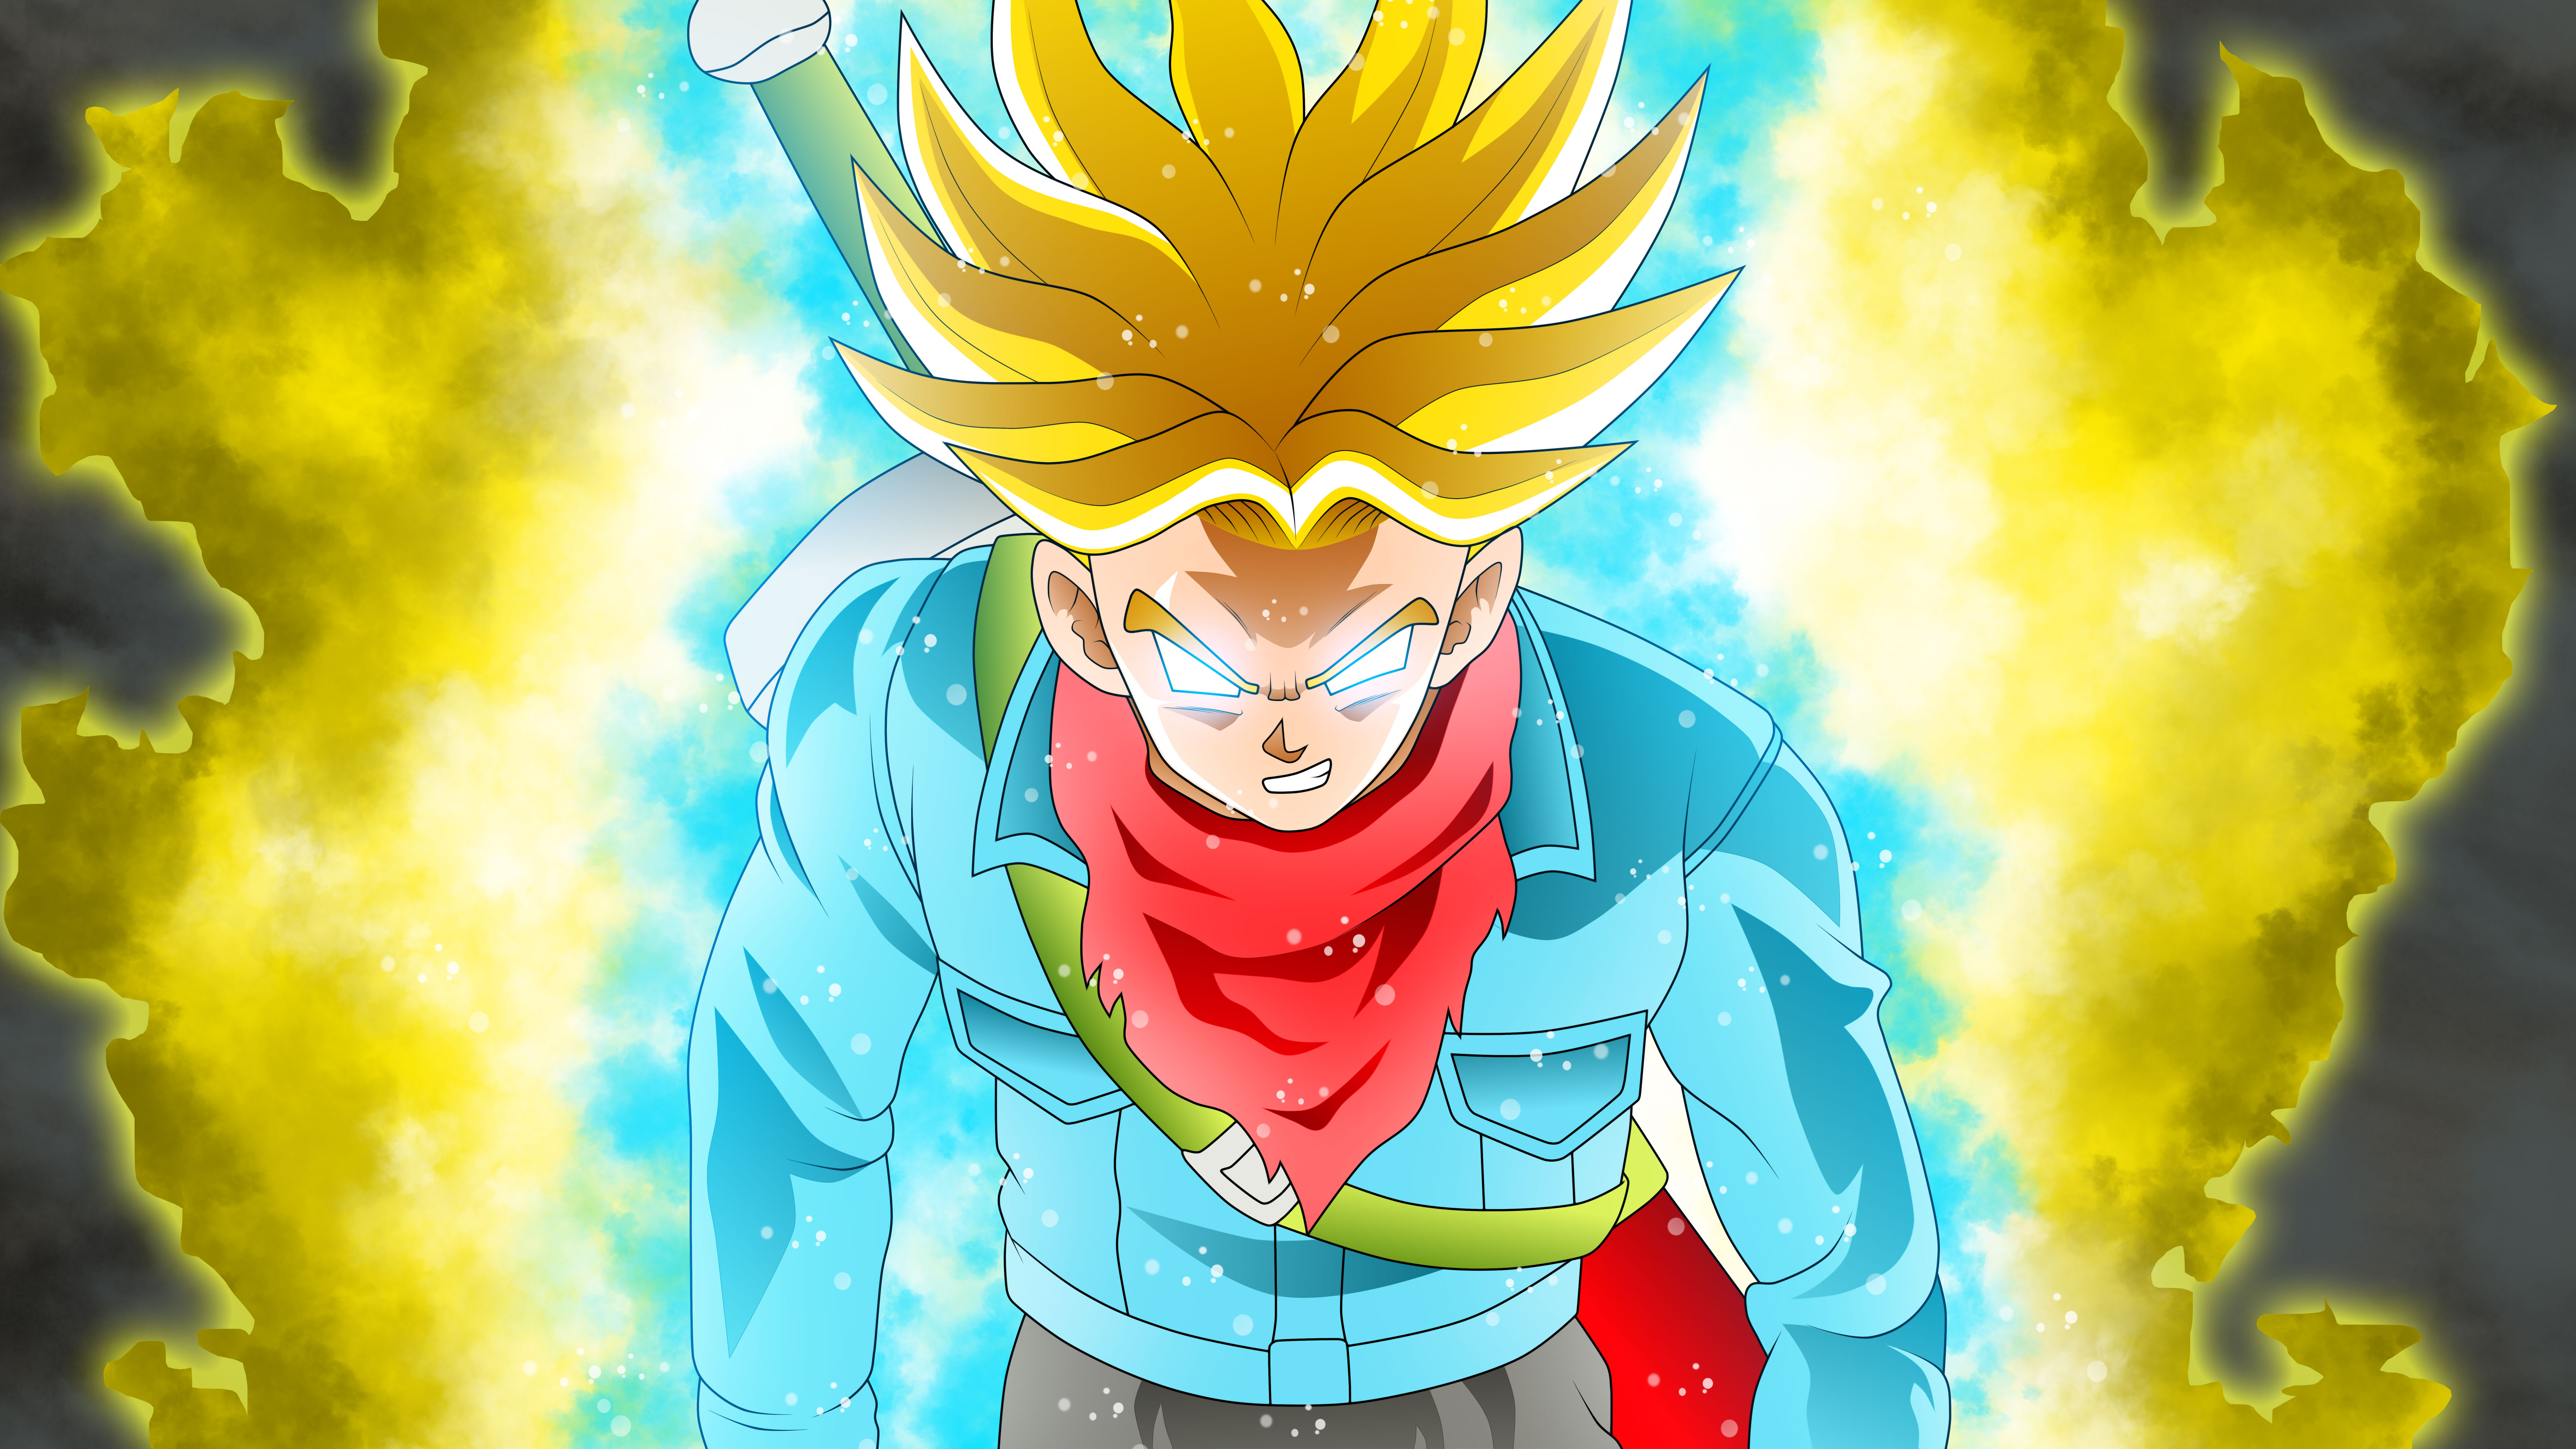 Trunks Dragon Ball Super, HD Anime, 4k Wallpapers, Images